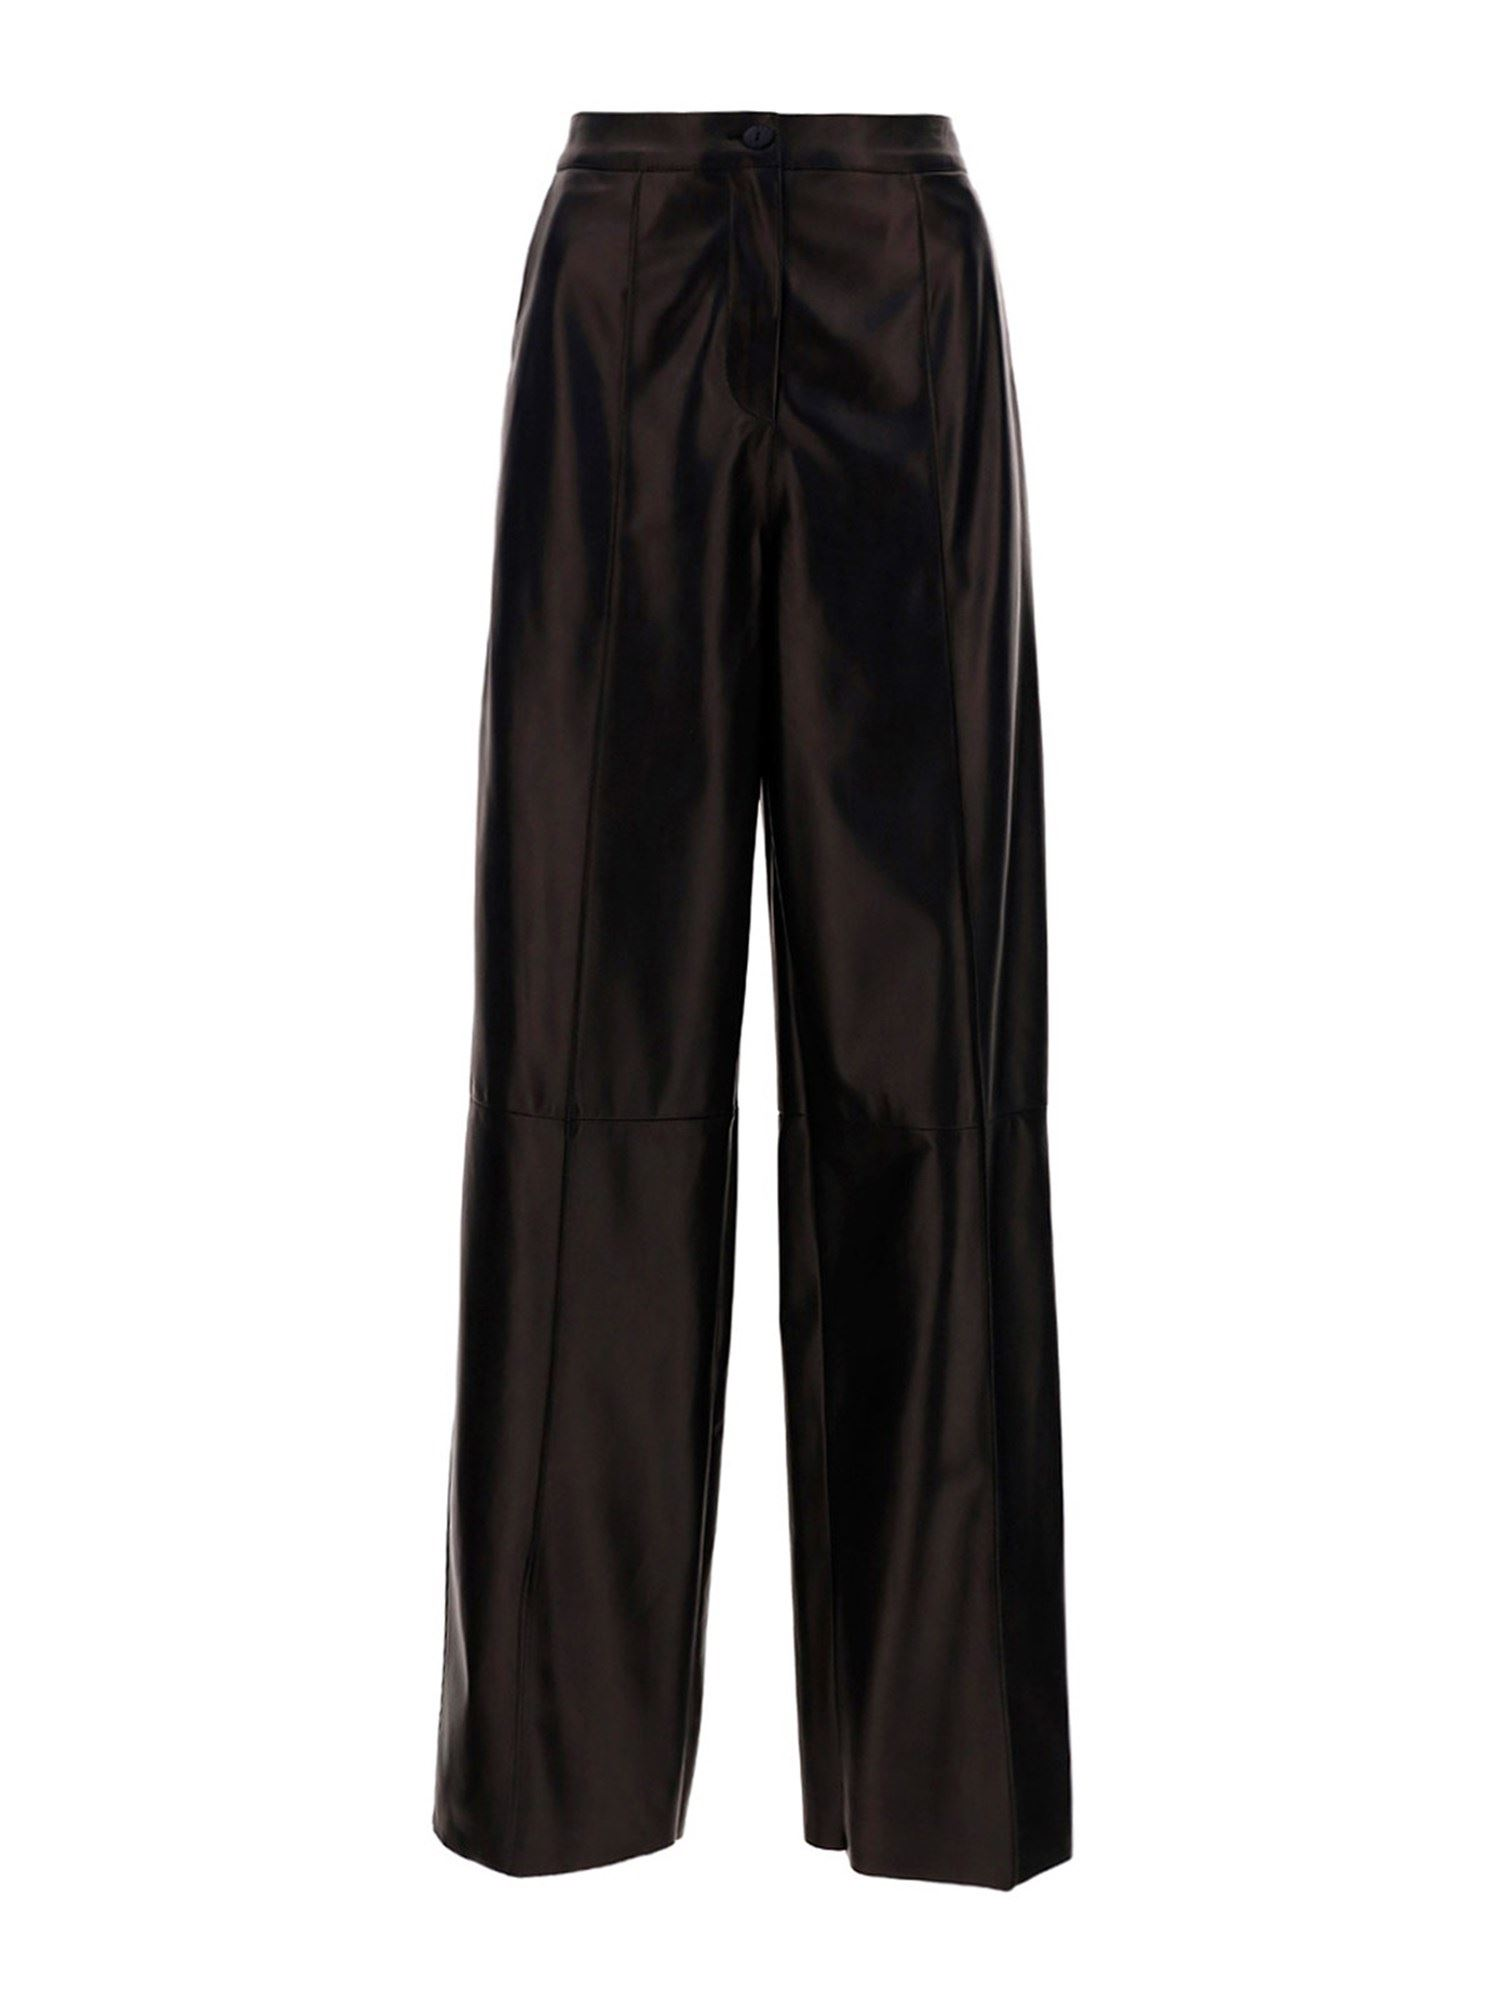 Drome Leathers NAPA PALAZZO TROUSERS IN BROWN